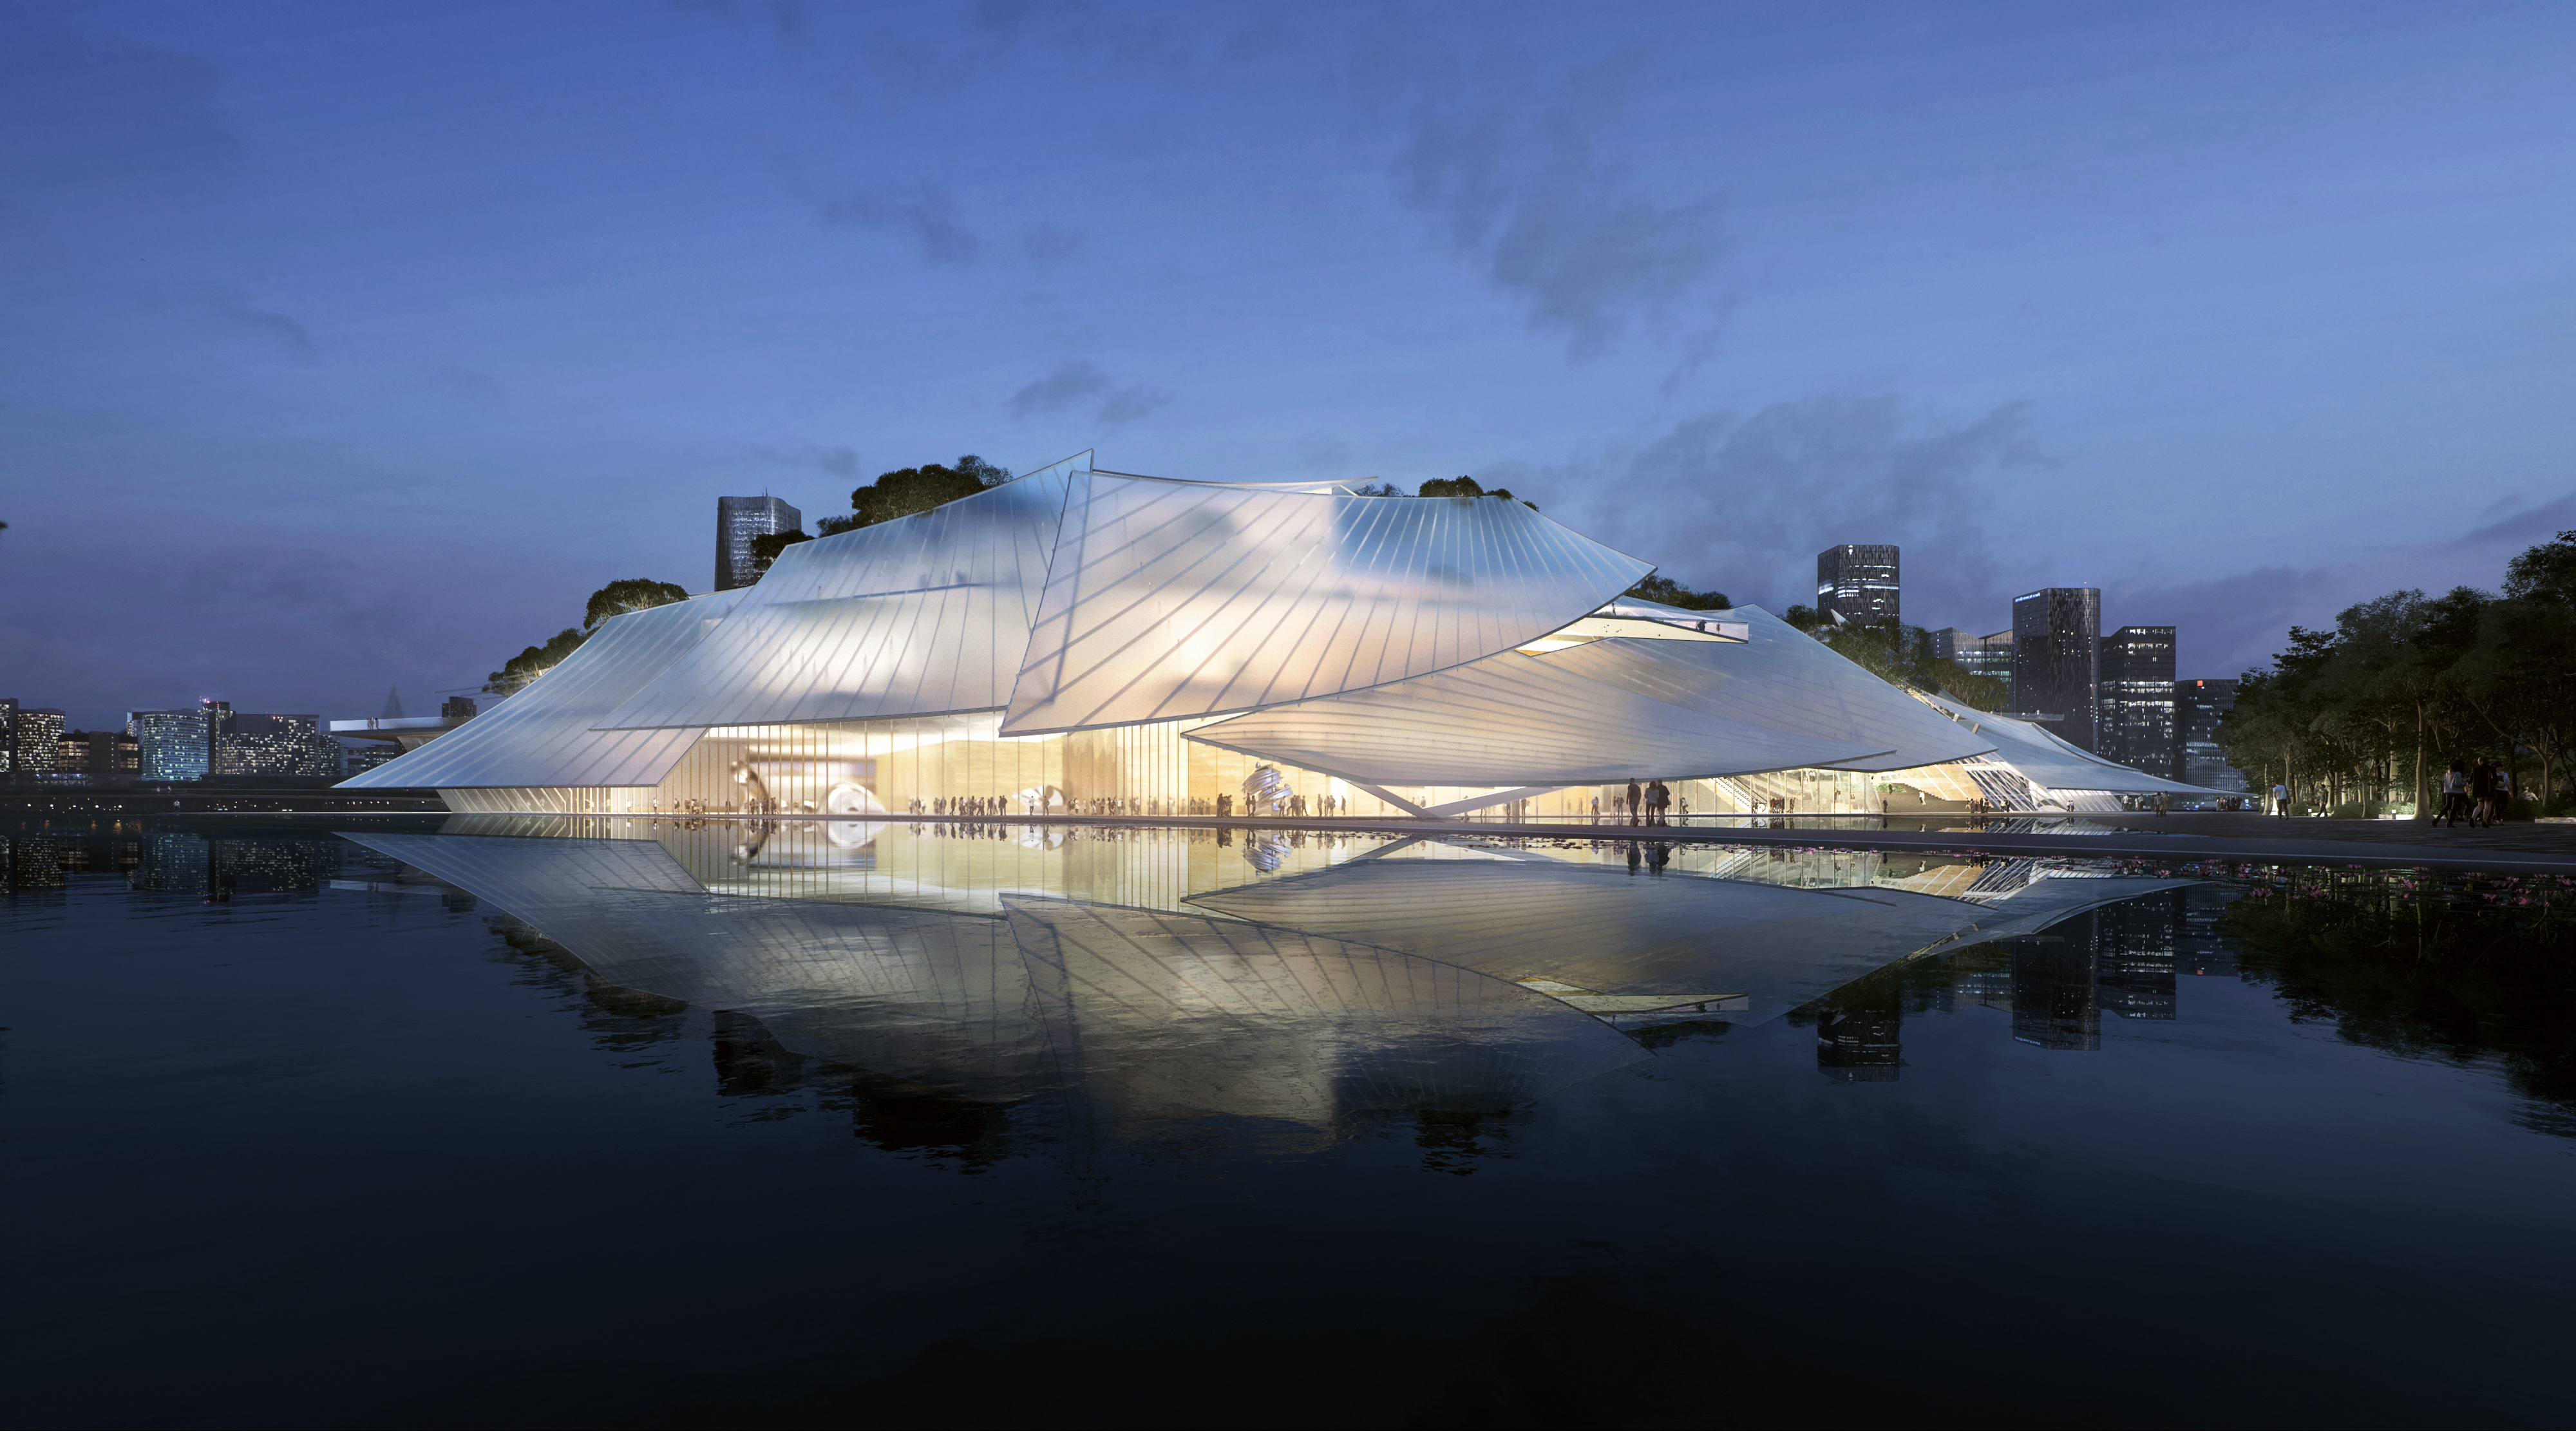 Rendering for Yiwu Grand Theatre, by MAD. All images courtesy of MAD